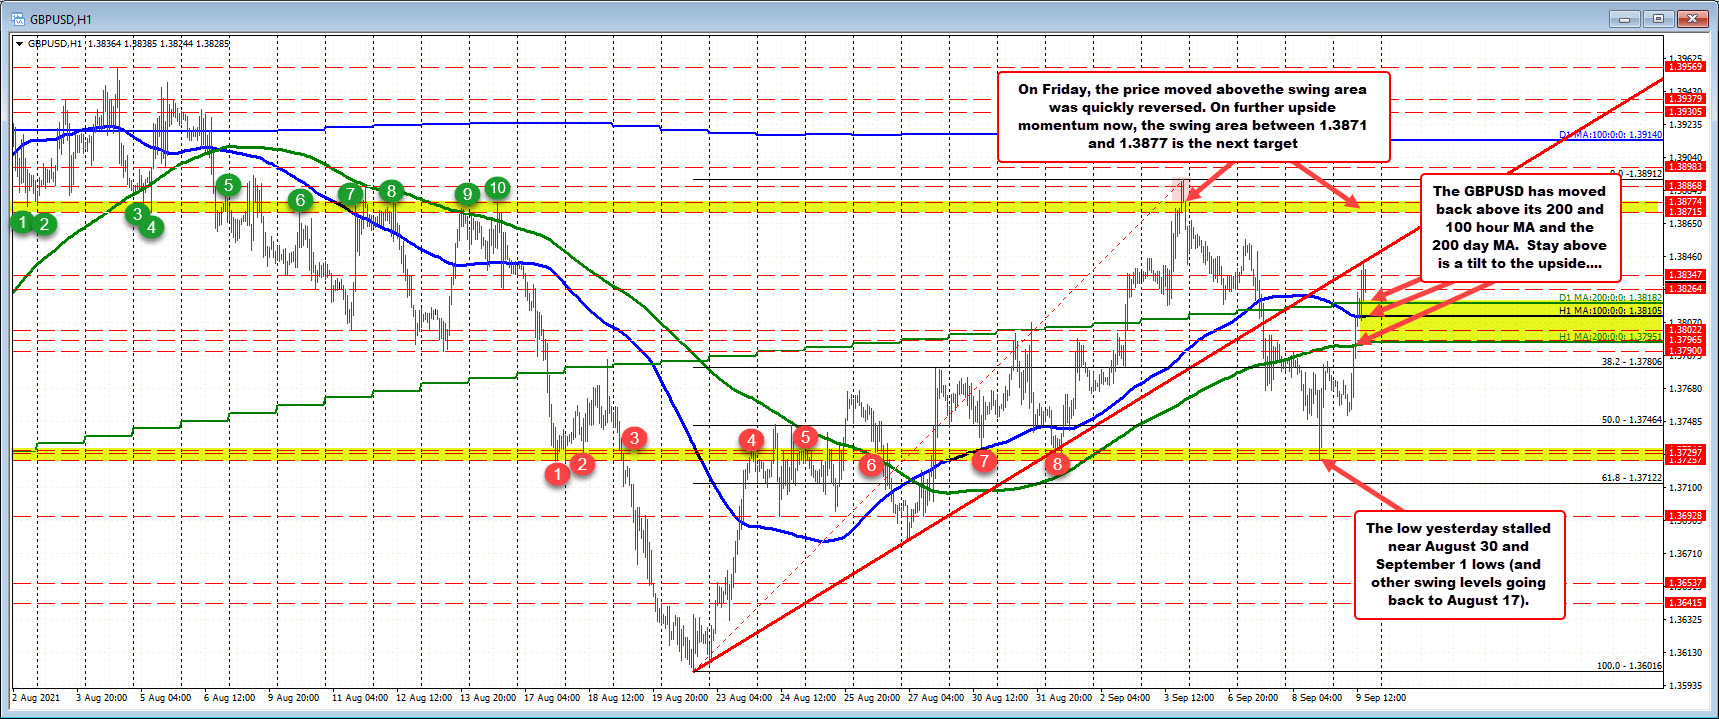 Price above the 200 hour moving average, 100 hour moving average and 200 day moving average_